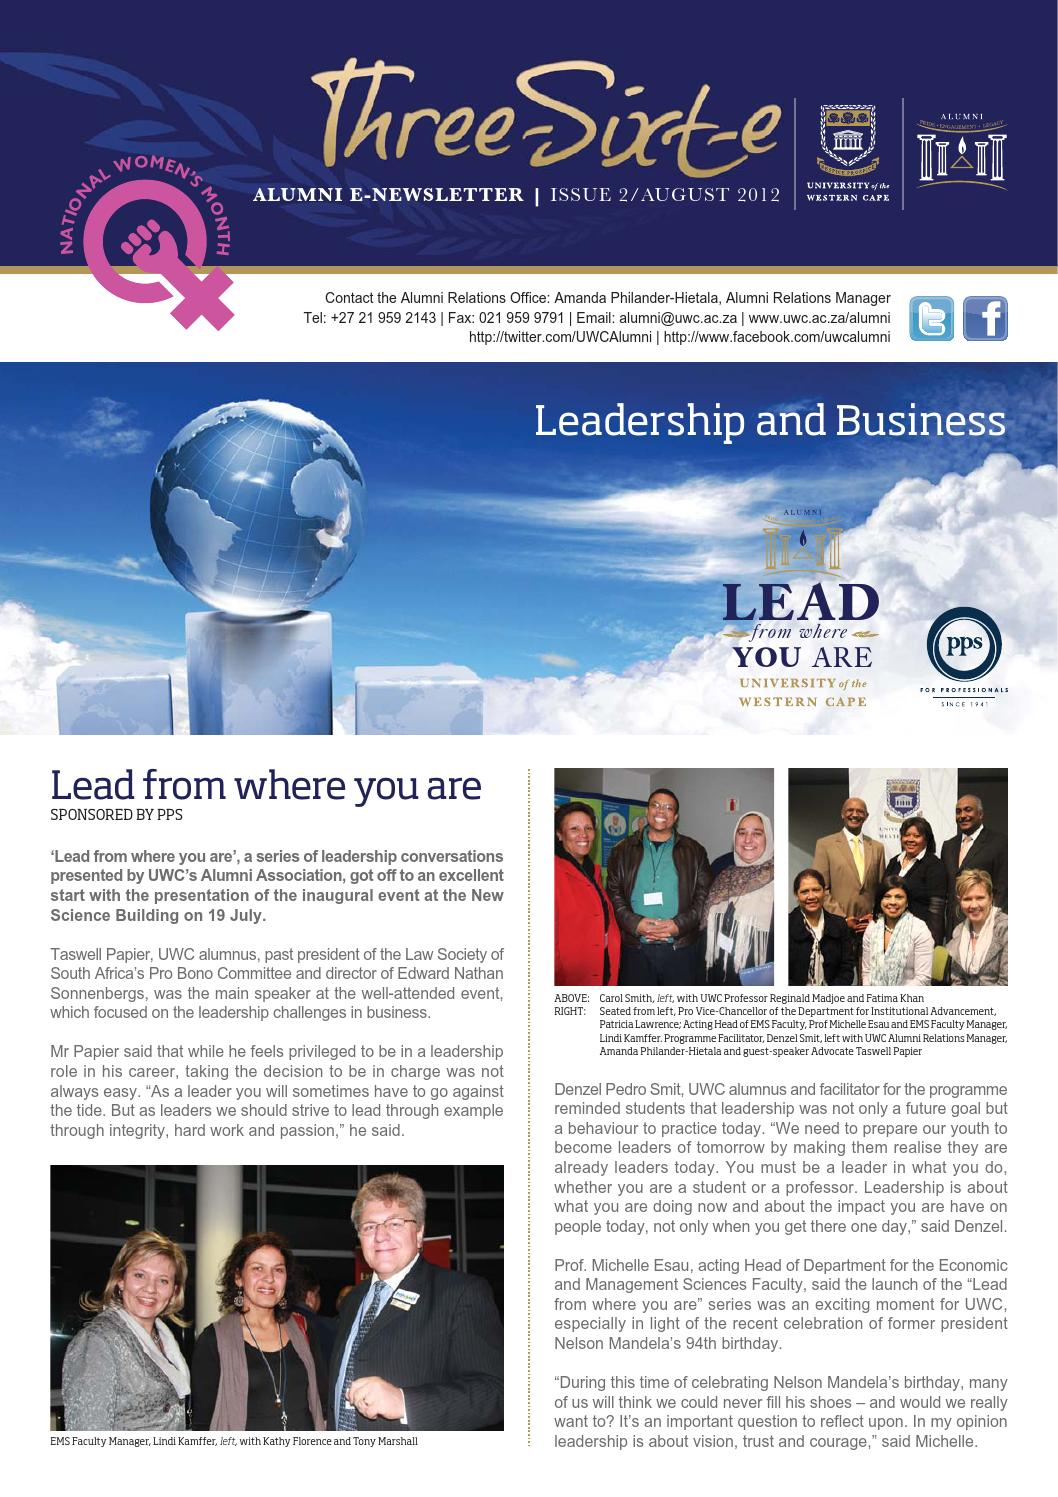 Uwc alumni newsletter issue2 aug 2012 by The University of the